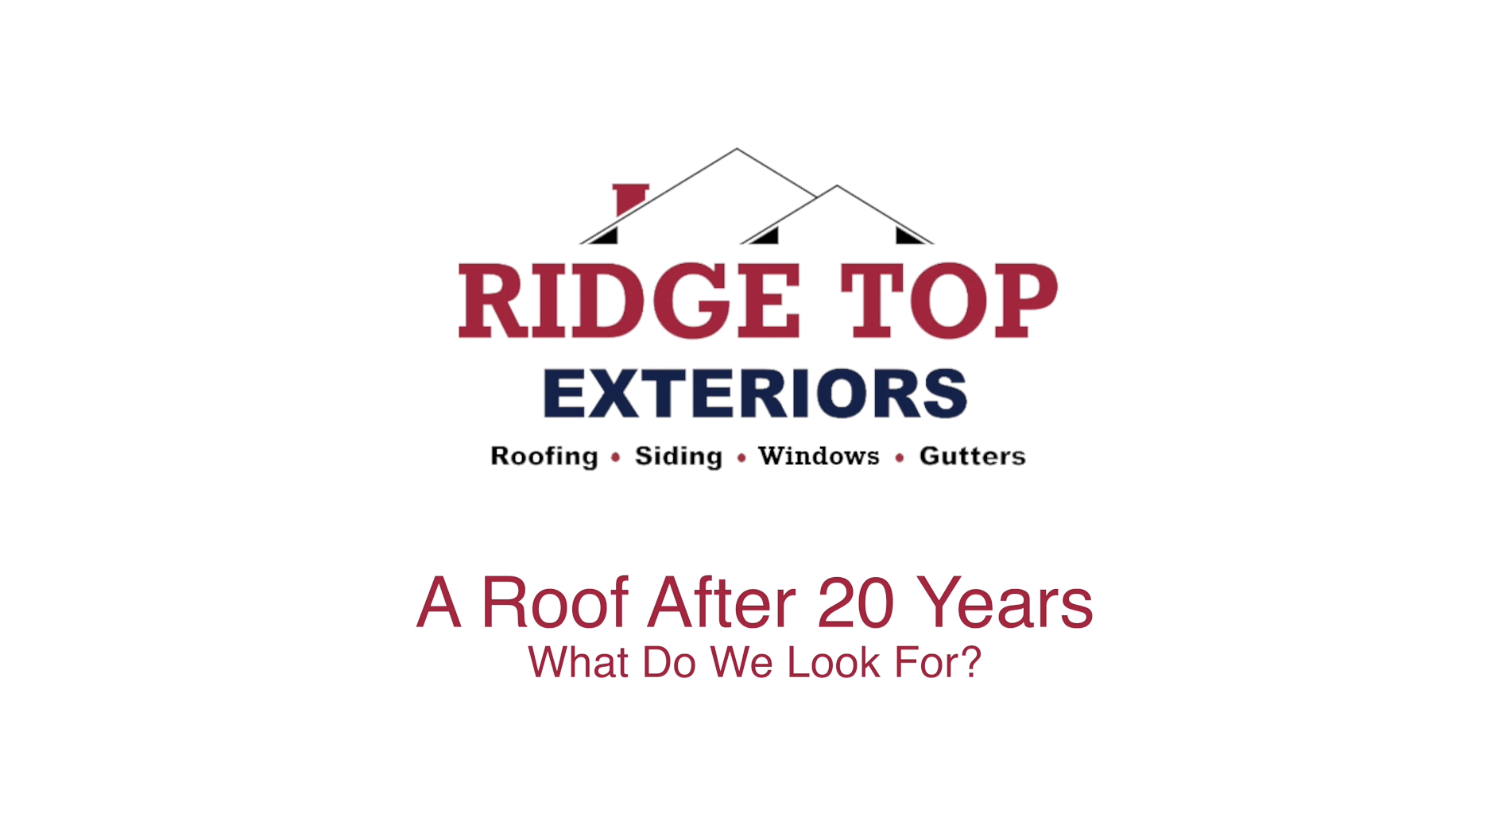 A Roof After 20 Years